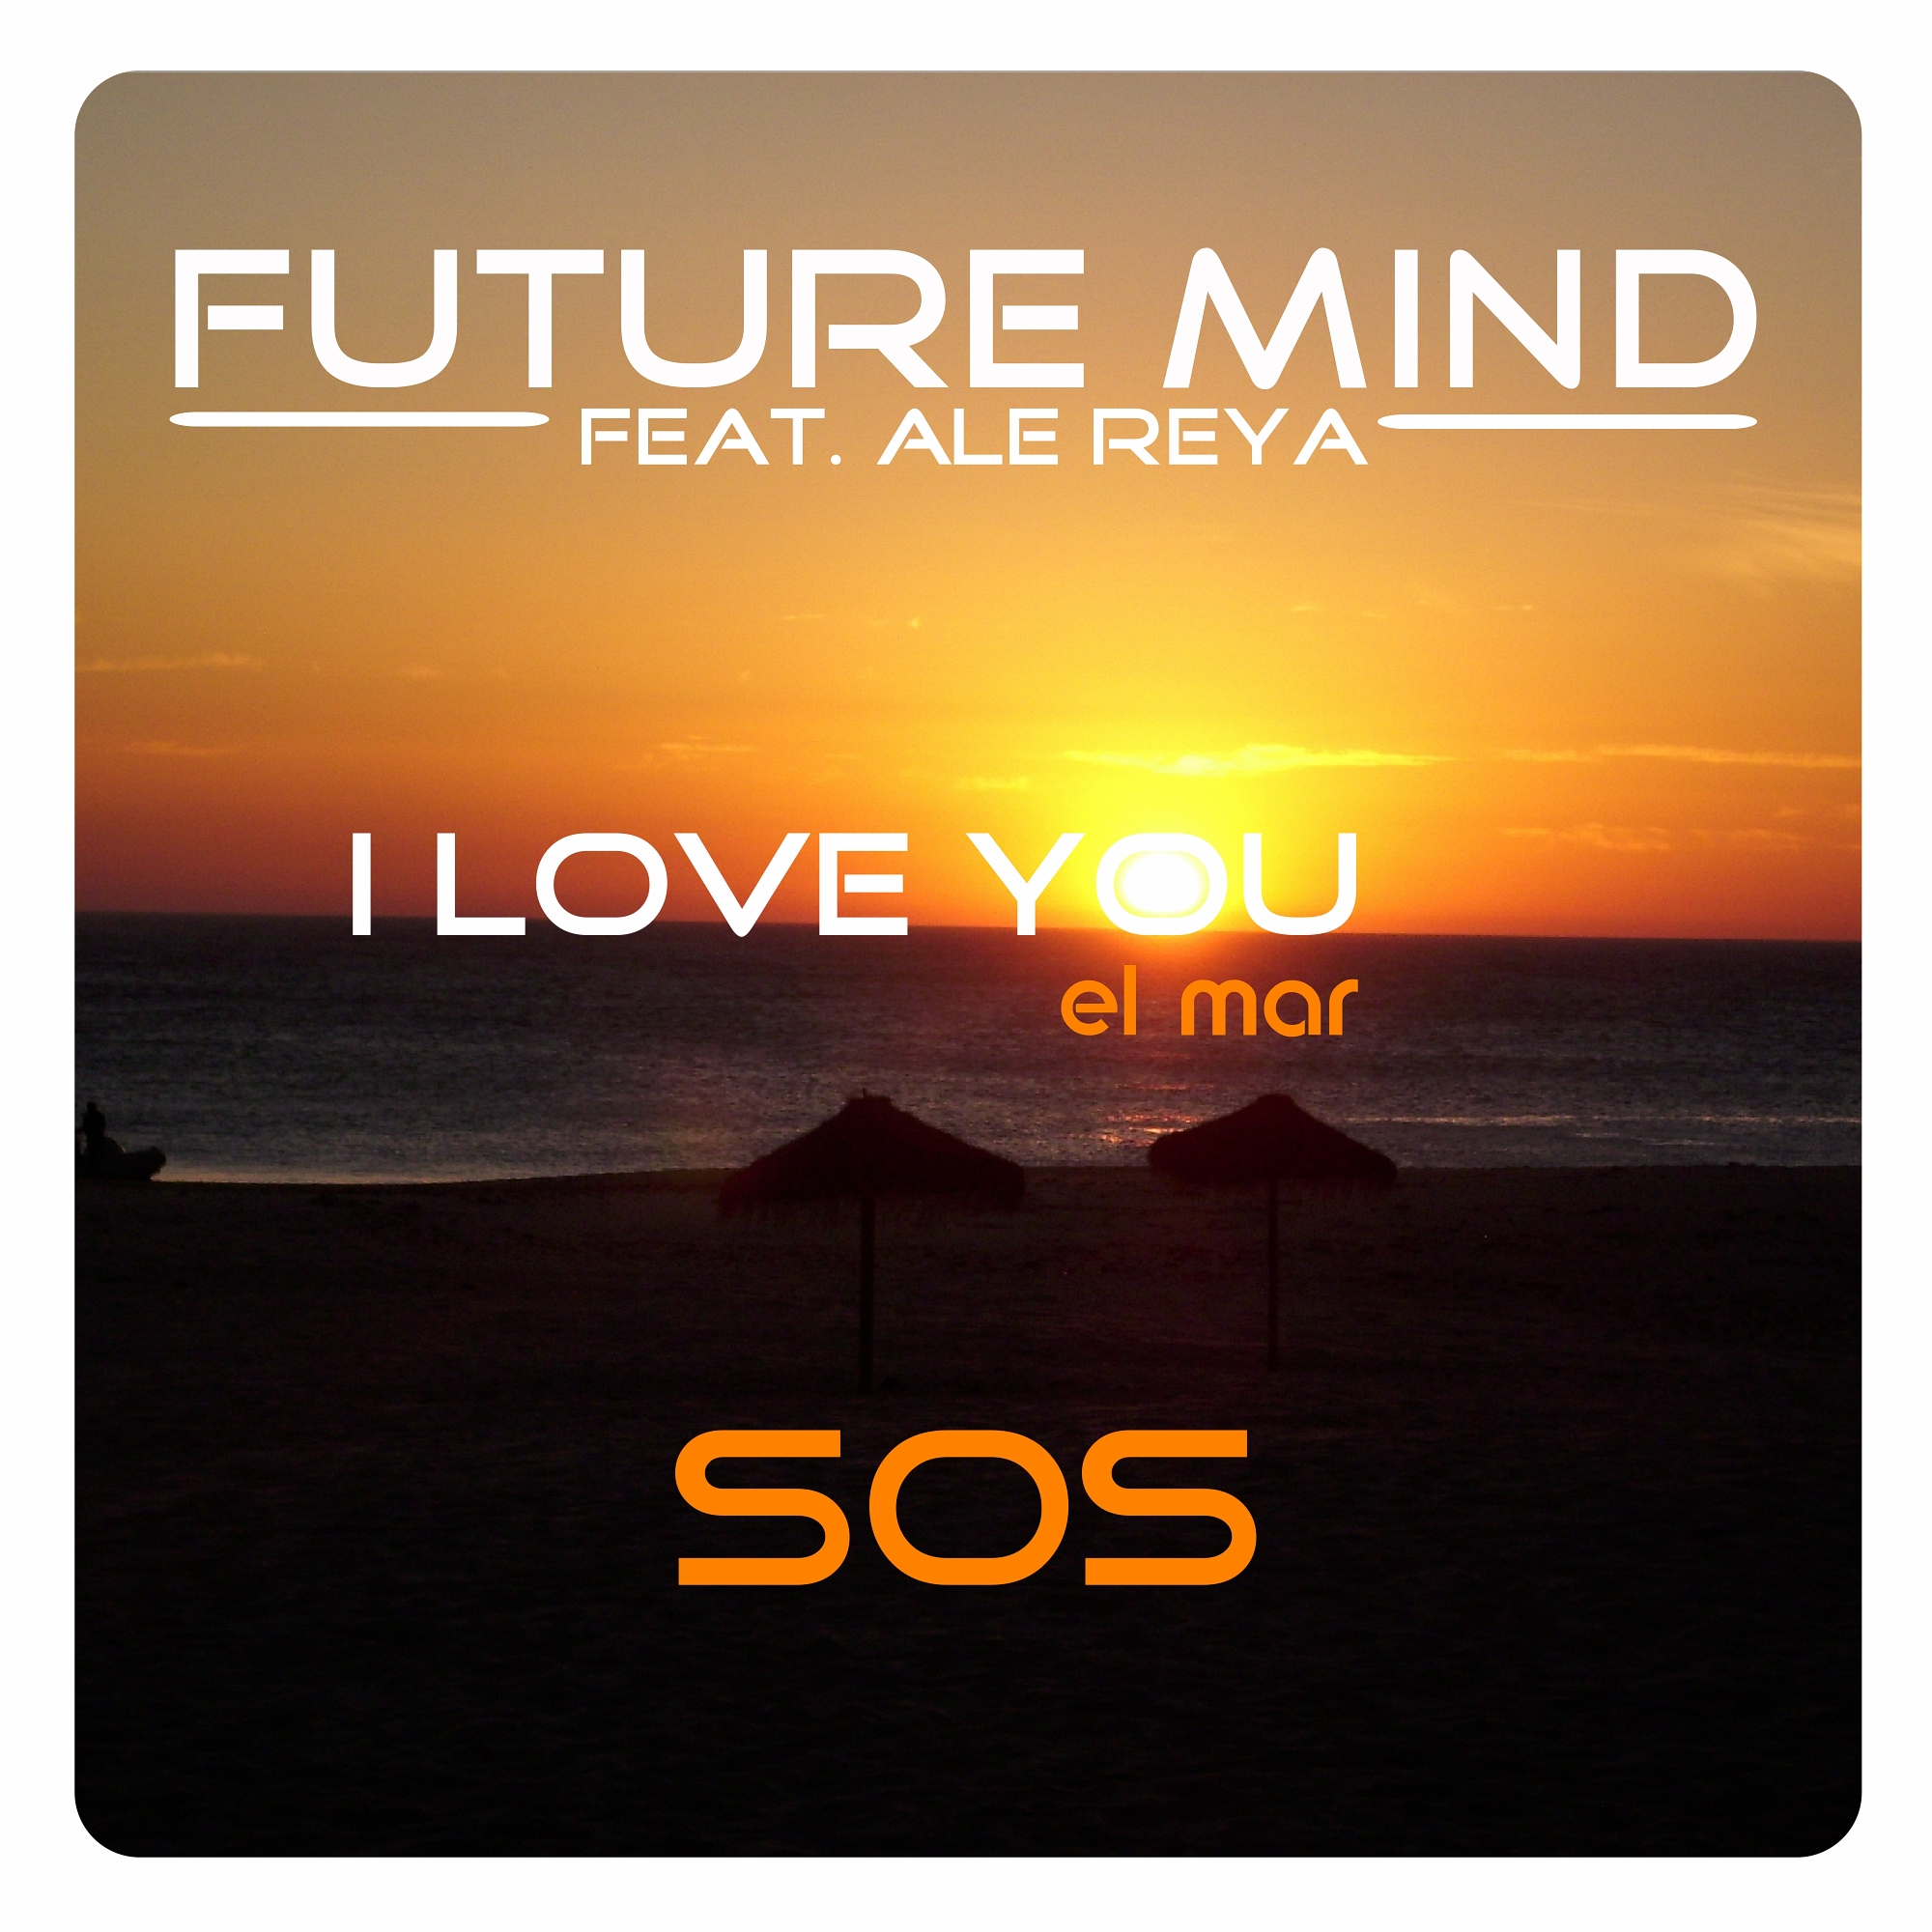 Future-Mind-I-love-you-el-mar-SOS